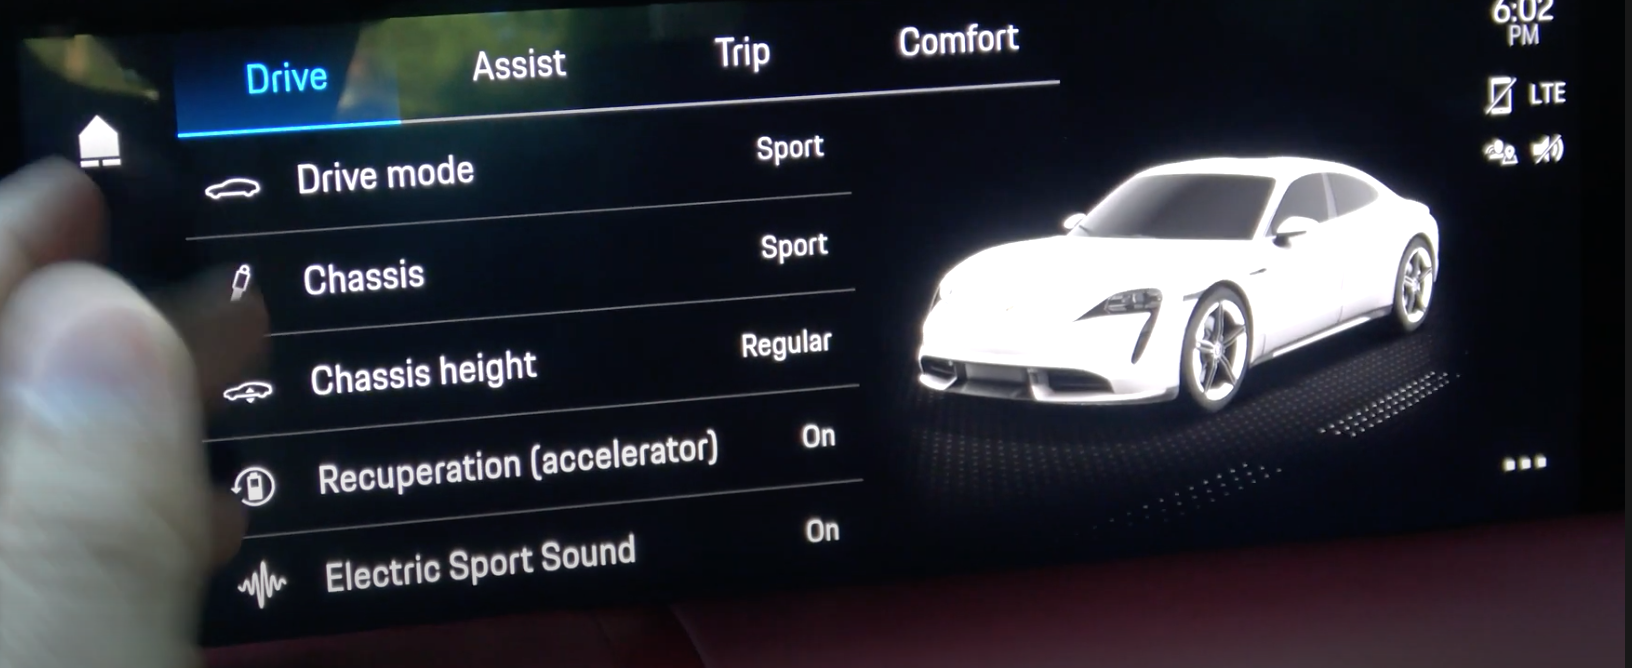 Adjusting the driving mode along with chassis, height, recuperations and driving sound